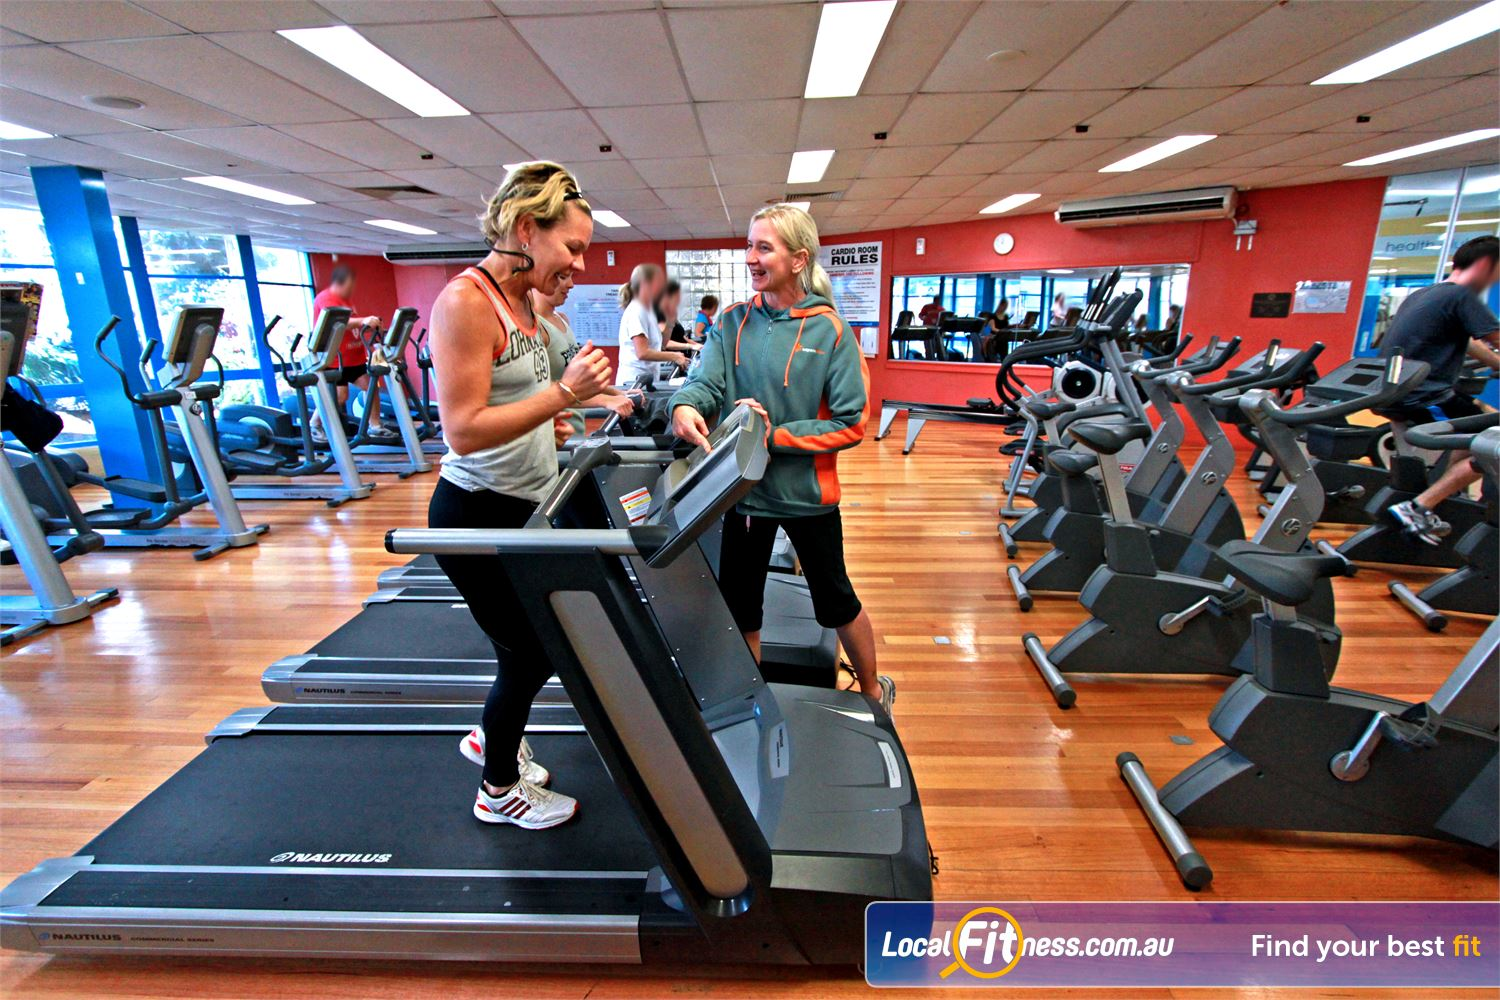 East Keilor Leisure Centre Near Keilor Park East Keilor gym instructors who are eager to help with your weight-loss and cardio goals.